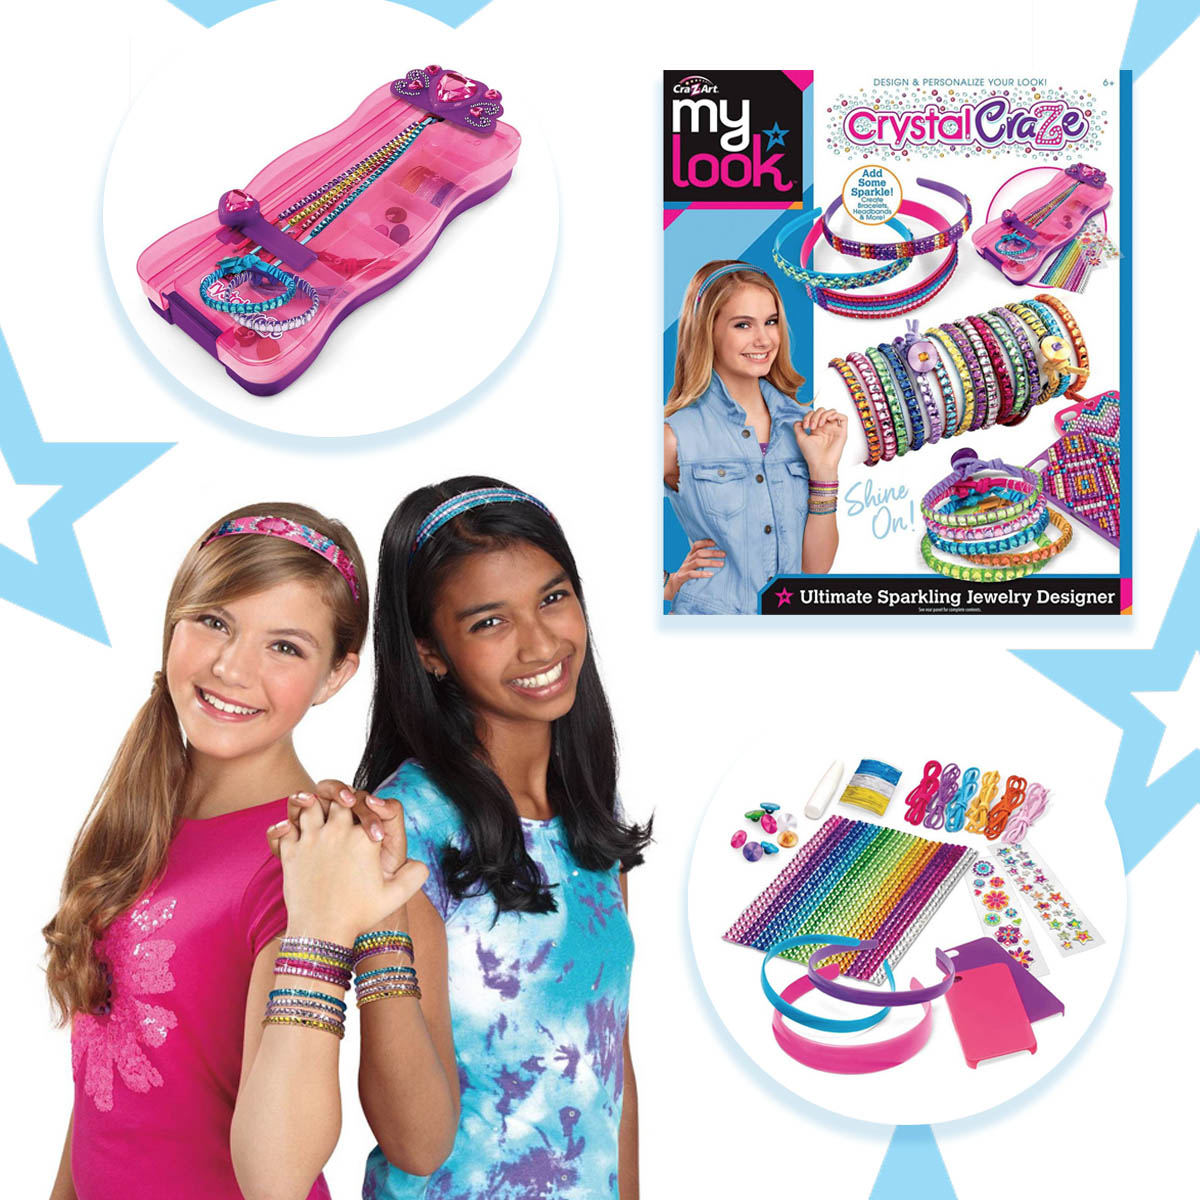 Cra Z Art On Twitter Only At Target The My Look Crystal Craze Ultimate Sparkling Jewelry Designer Has Glitter Galore Create Dazzling Phone Cases Headbands And More Includes Everything You Need To Be The Ultimate